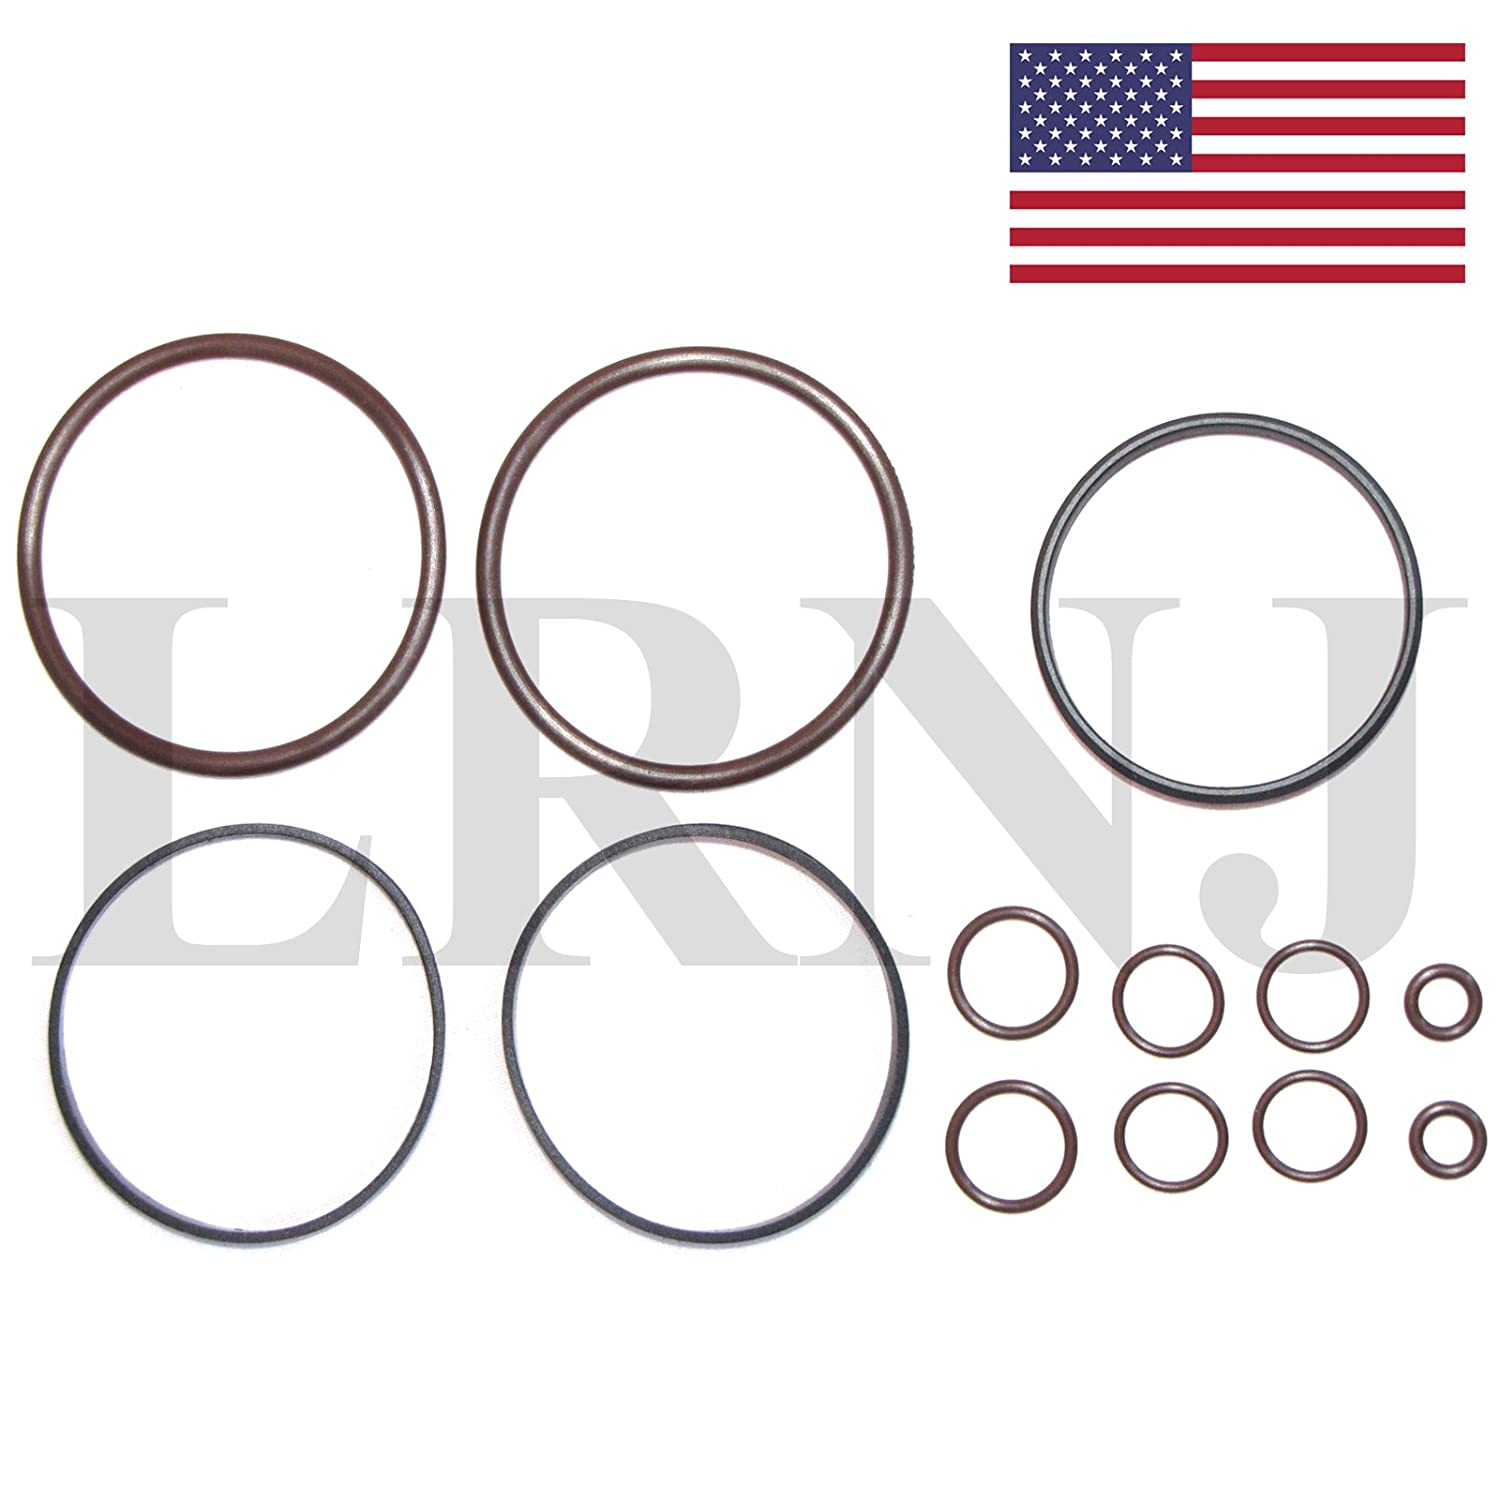 BMW X5 E53 4.4i / 4.6is 2000-2004 M62TU VANOS SEALS REPAIR KIT & CENTERING RING PART: LRNJBMWM62